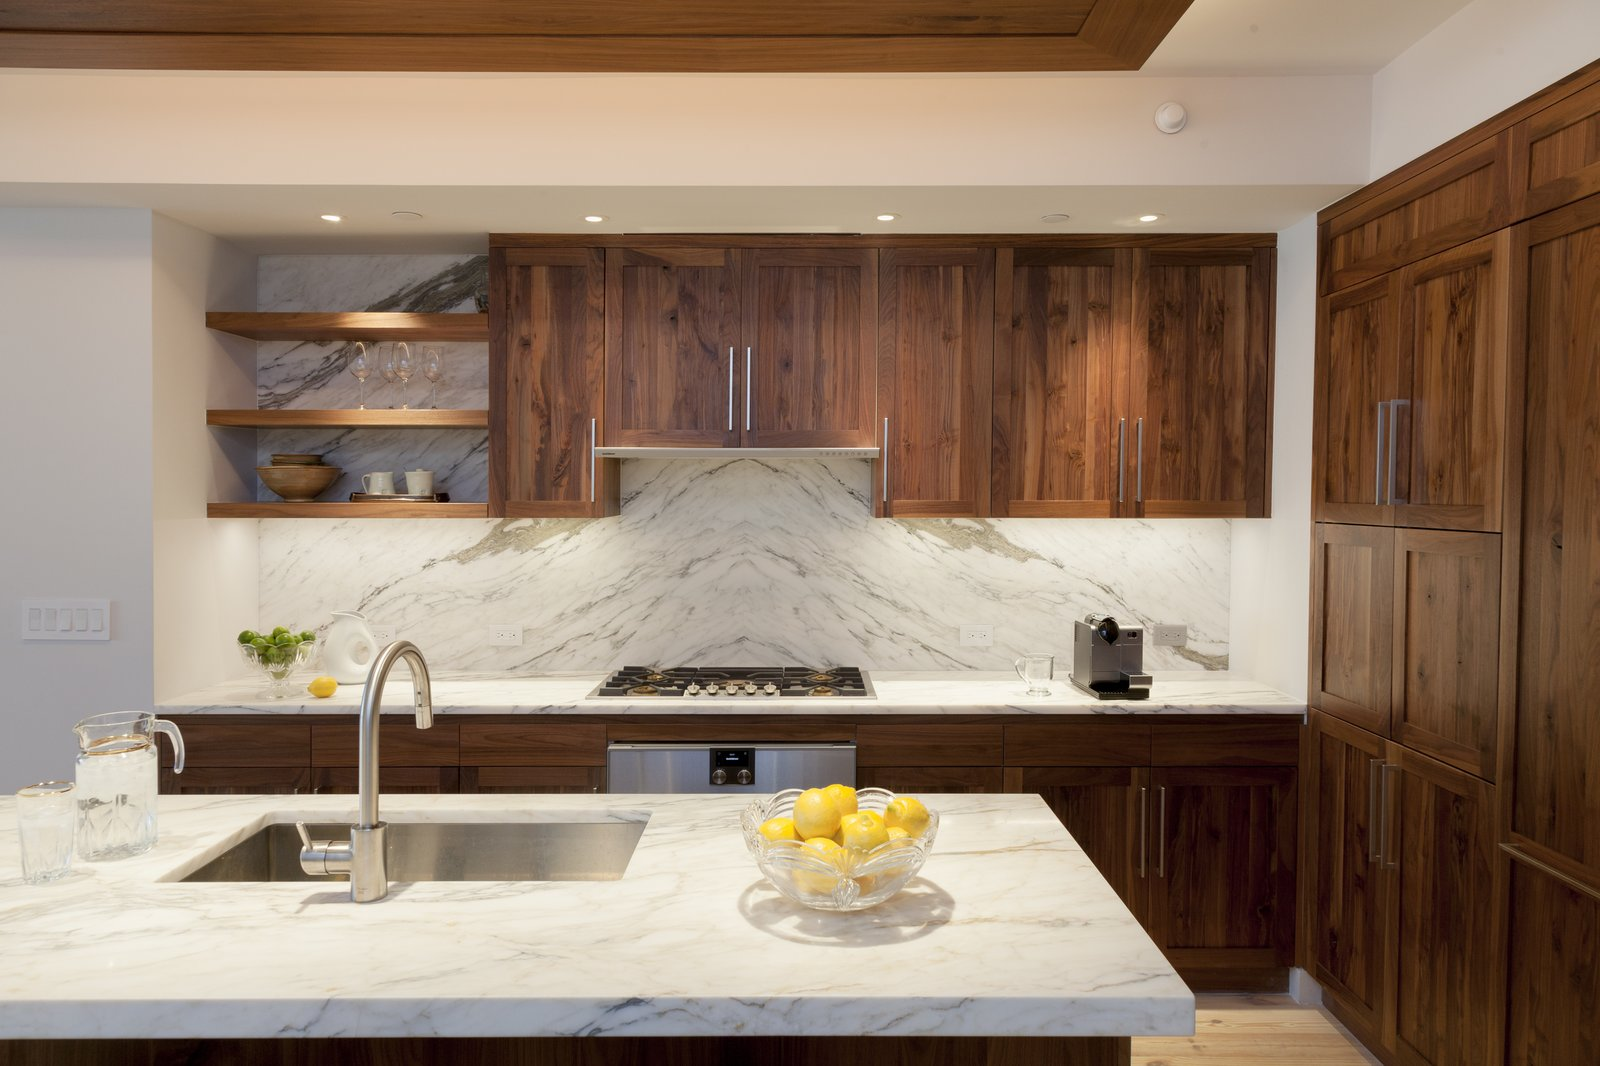 Kitchen, Marble, Wood, Stone Slab, Ceiling, Pendant, Light Hardwood, Accent, Recessed, Refrigerator, Wall Oven, Cooktops, Range, Range Hood, Wine Cooler, Ice Maker, Dishwasher, Microwave, and Undermount Walnut and book-matched  Calcutta kitchen  Best Kitchen Range Hood Ice Maker Range Dishwasher Refrigerator Marble Photos from Pierhouse At Brooklyn Bridge Park Condo